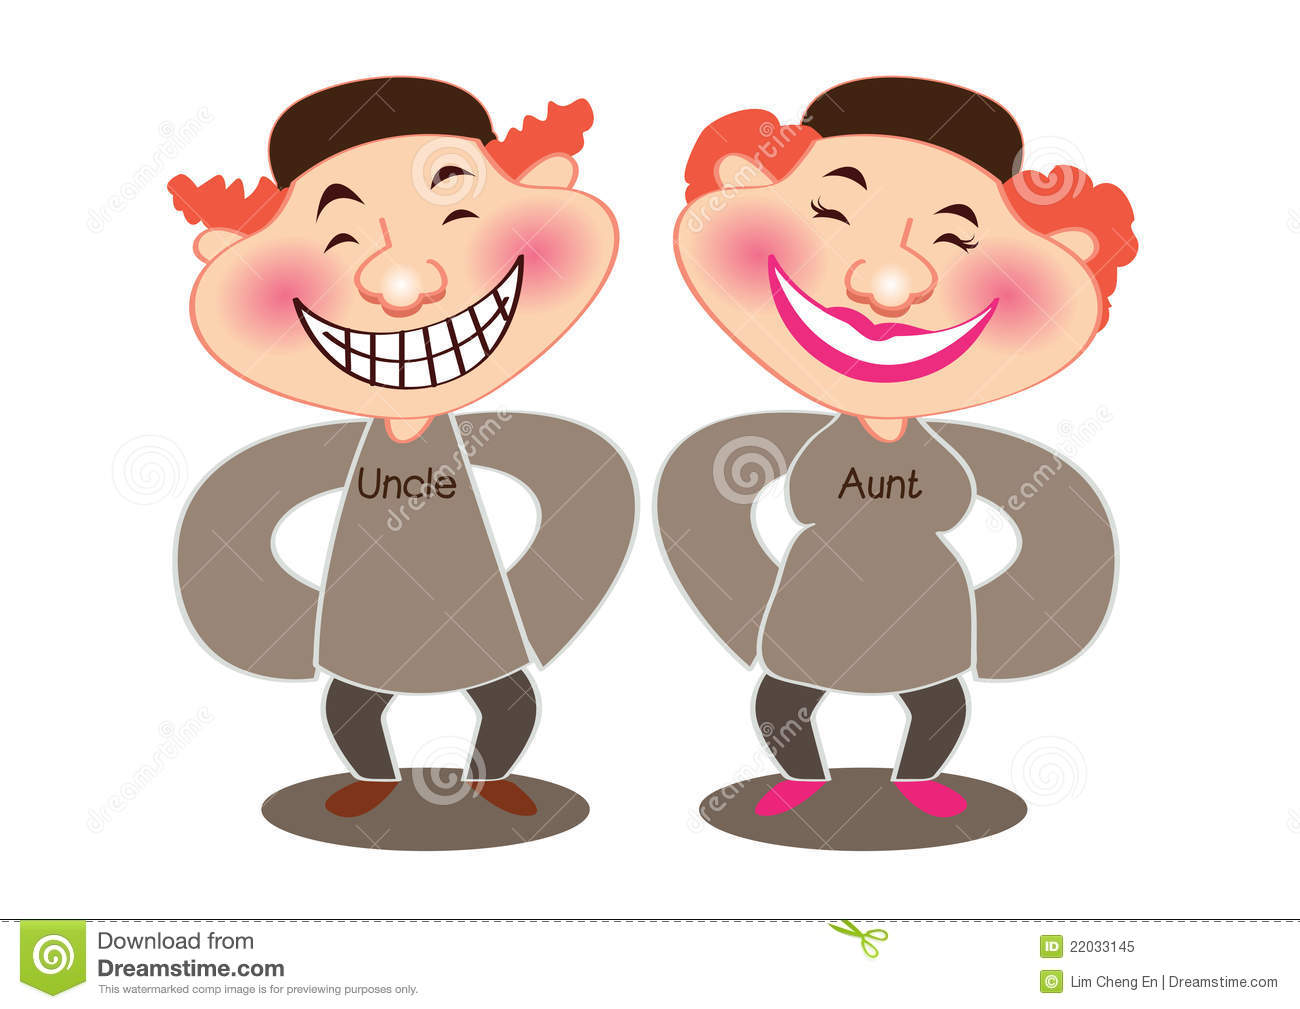 Aunt and Uncle Clip Art – Cliparts